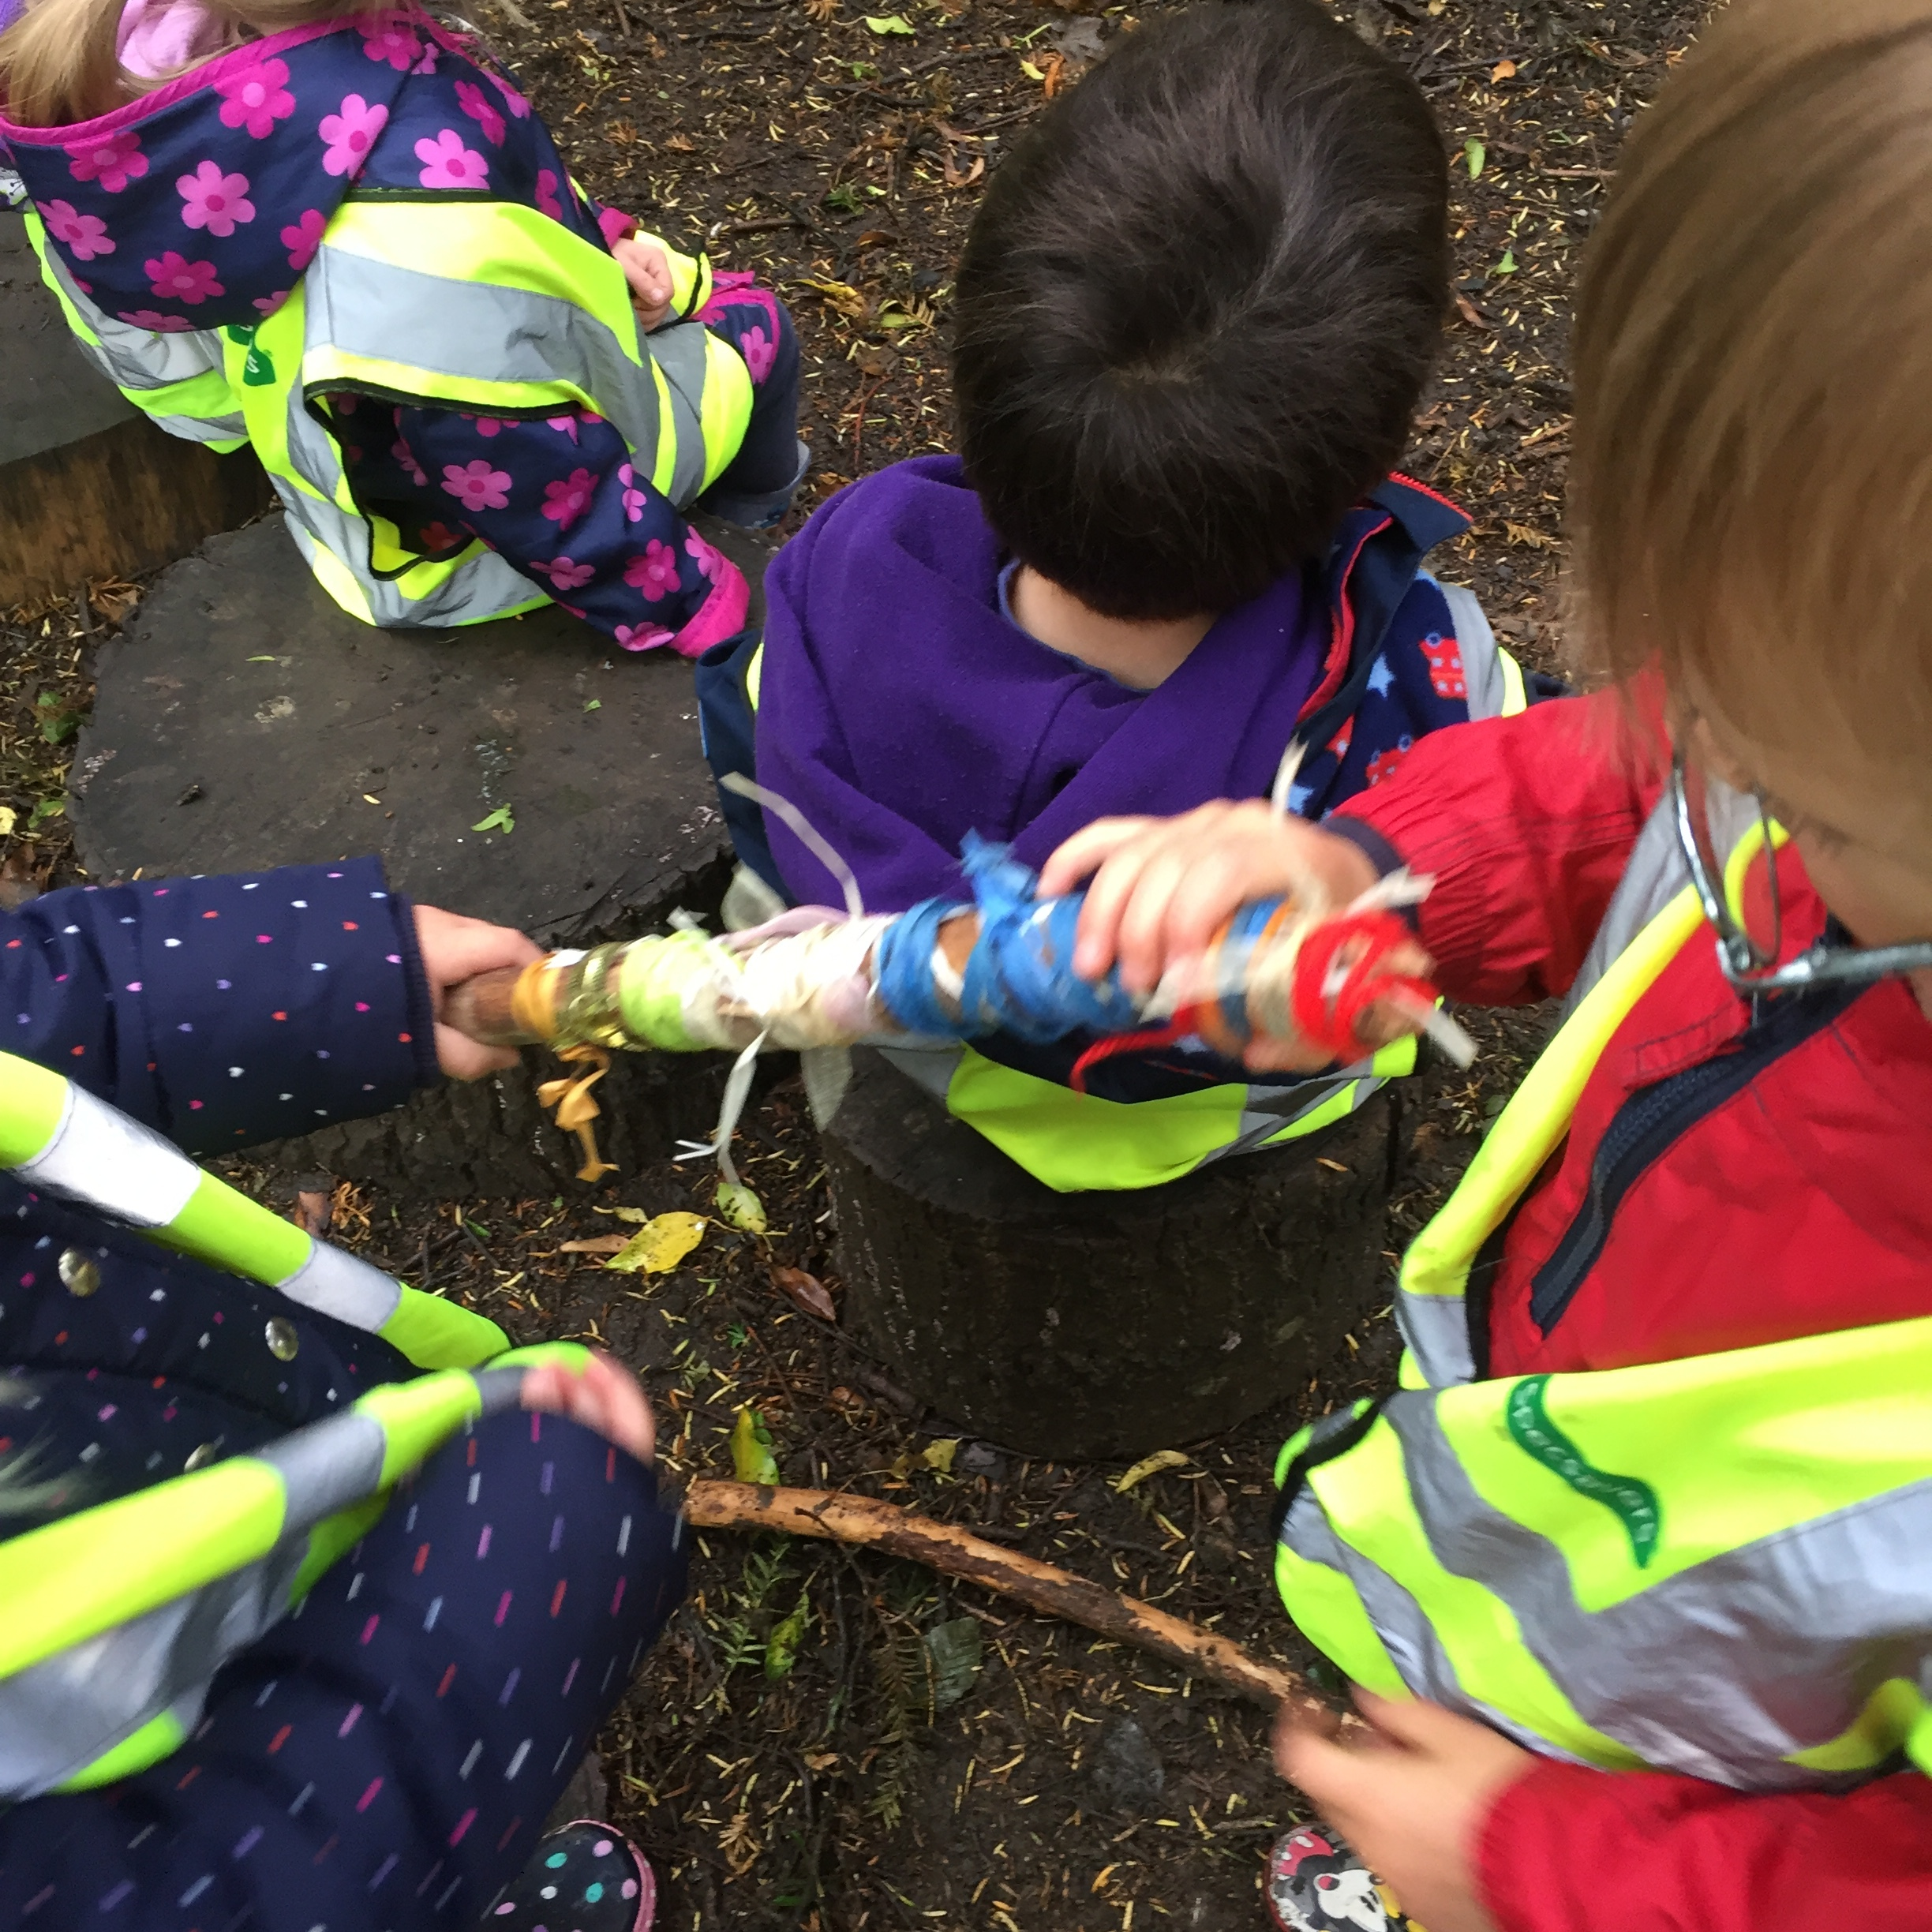 Th children pass the fire stick to learn about being safe around fire, staying 'outside' of the area.